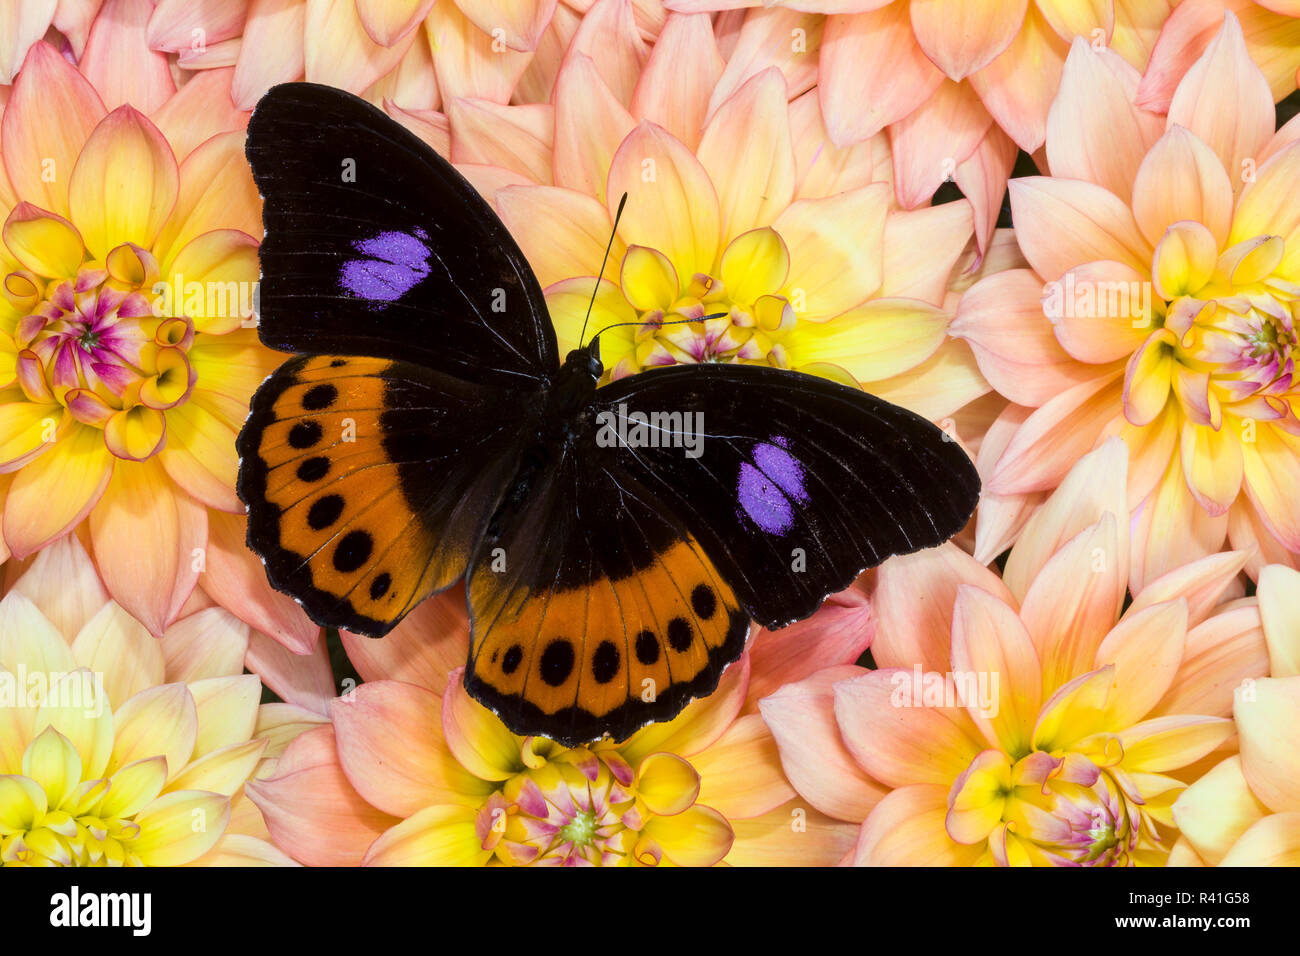 Bộ sưu tập cánh vẩy 6 - Page 14 Hypolimnas-pandarus-pandora-the-brush-footed-butterfly-from-southeast-asia-on-dahlia-flowers-R41G58